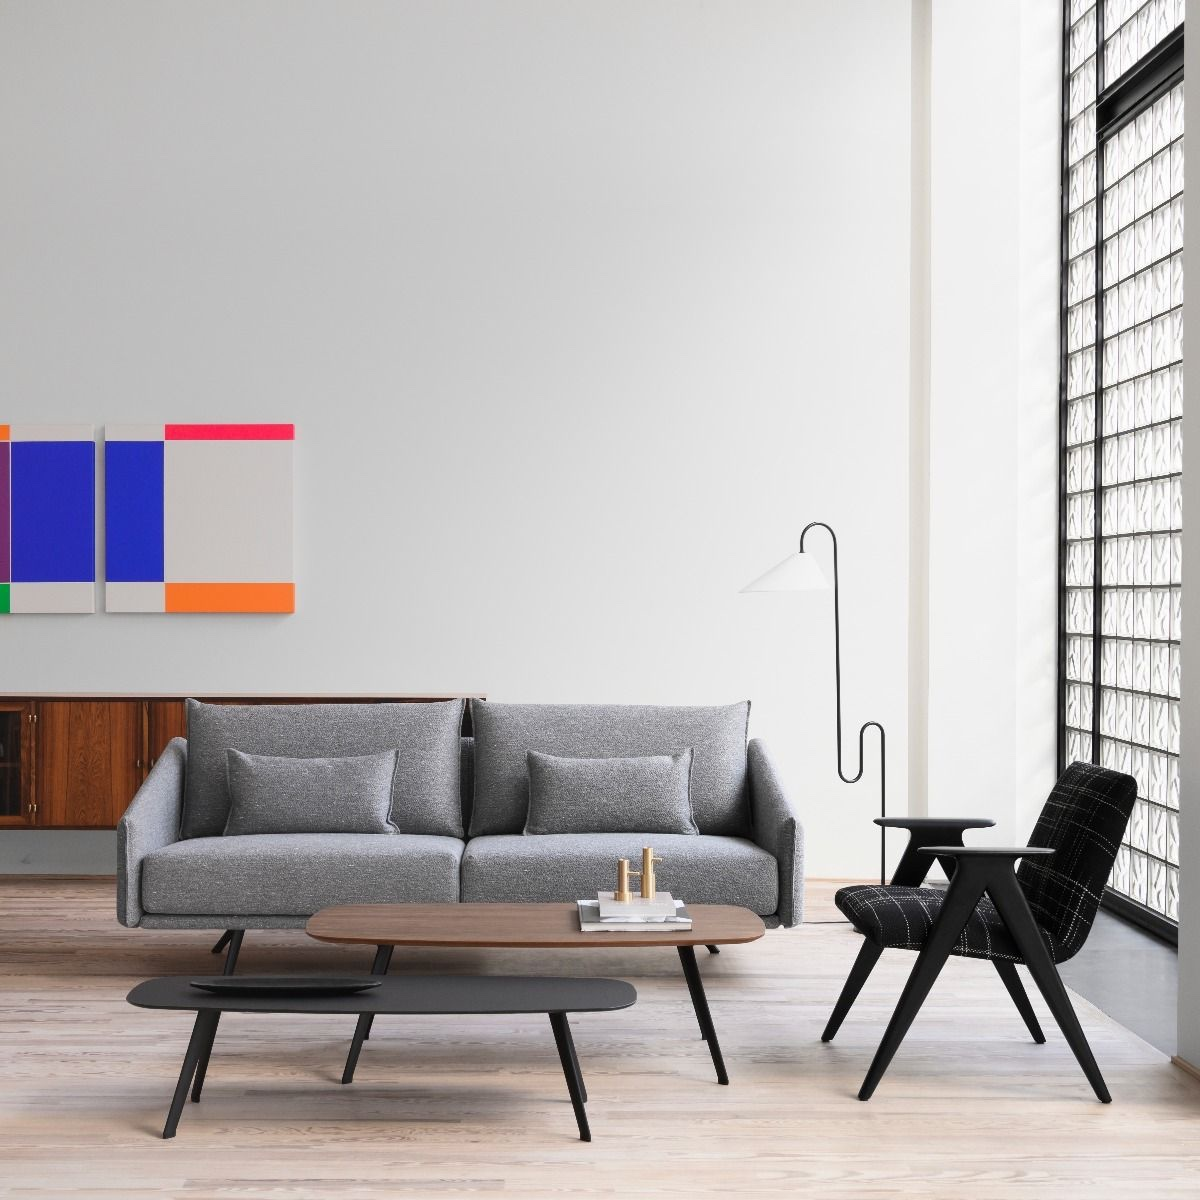 Perfect Partners - Sofa and Chair Combo